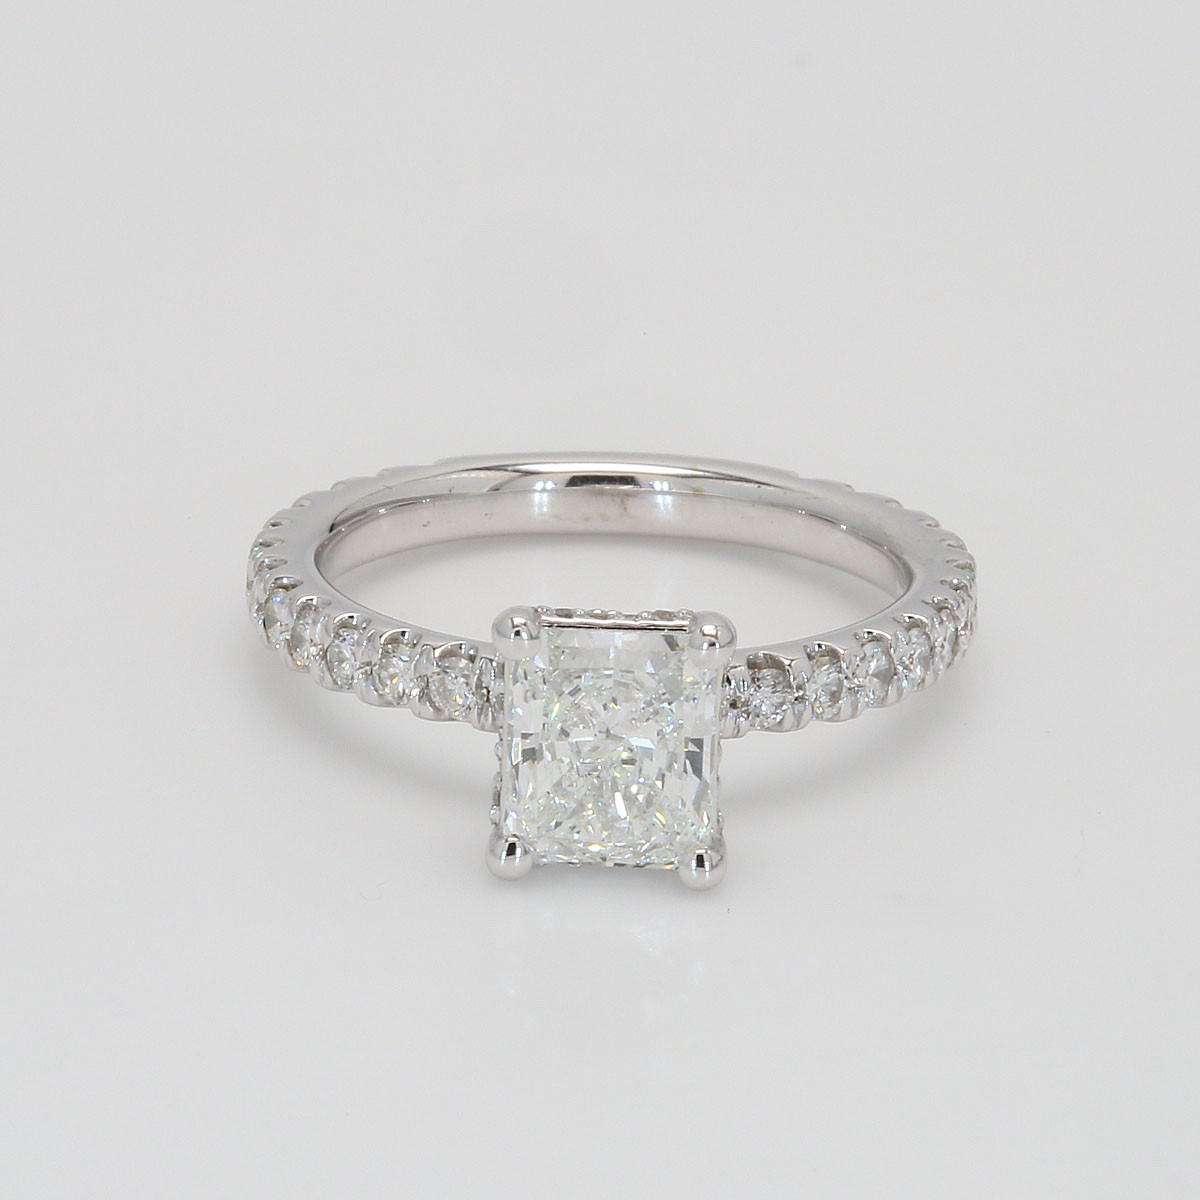 1.47 Princess Cut Diamond Engagement Ring